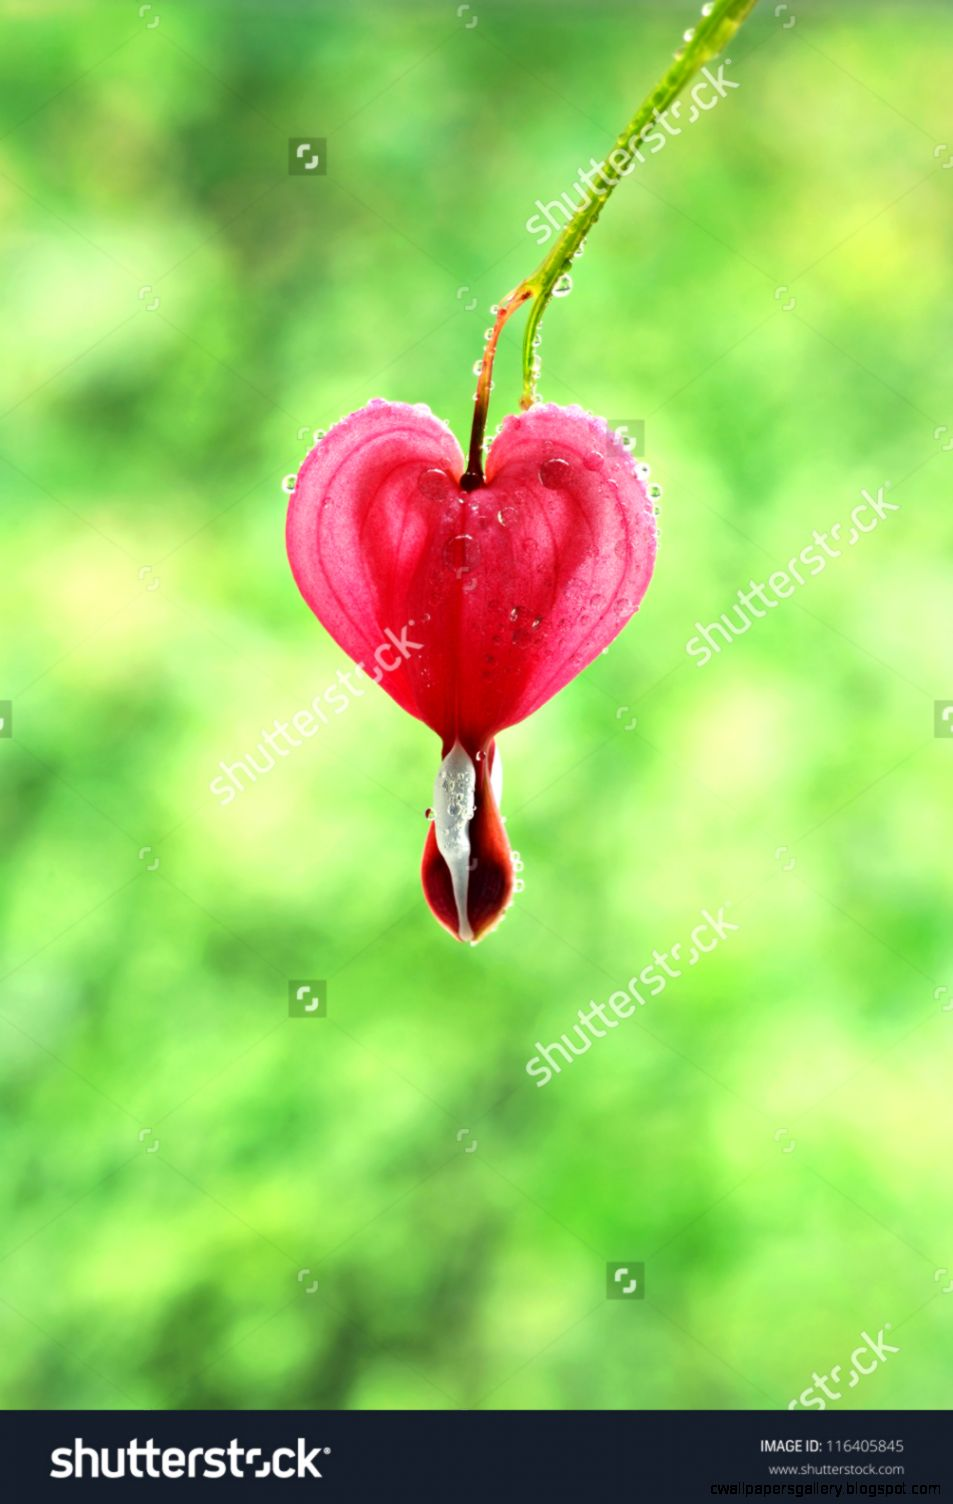 Single Bleeding Heart Flower Blossom With Water Droplets Macro